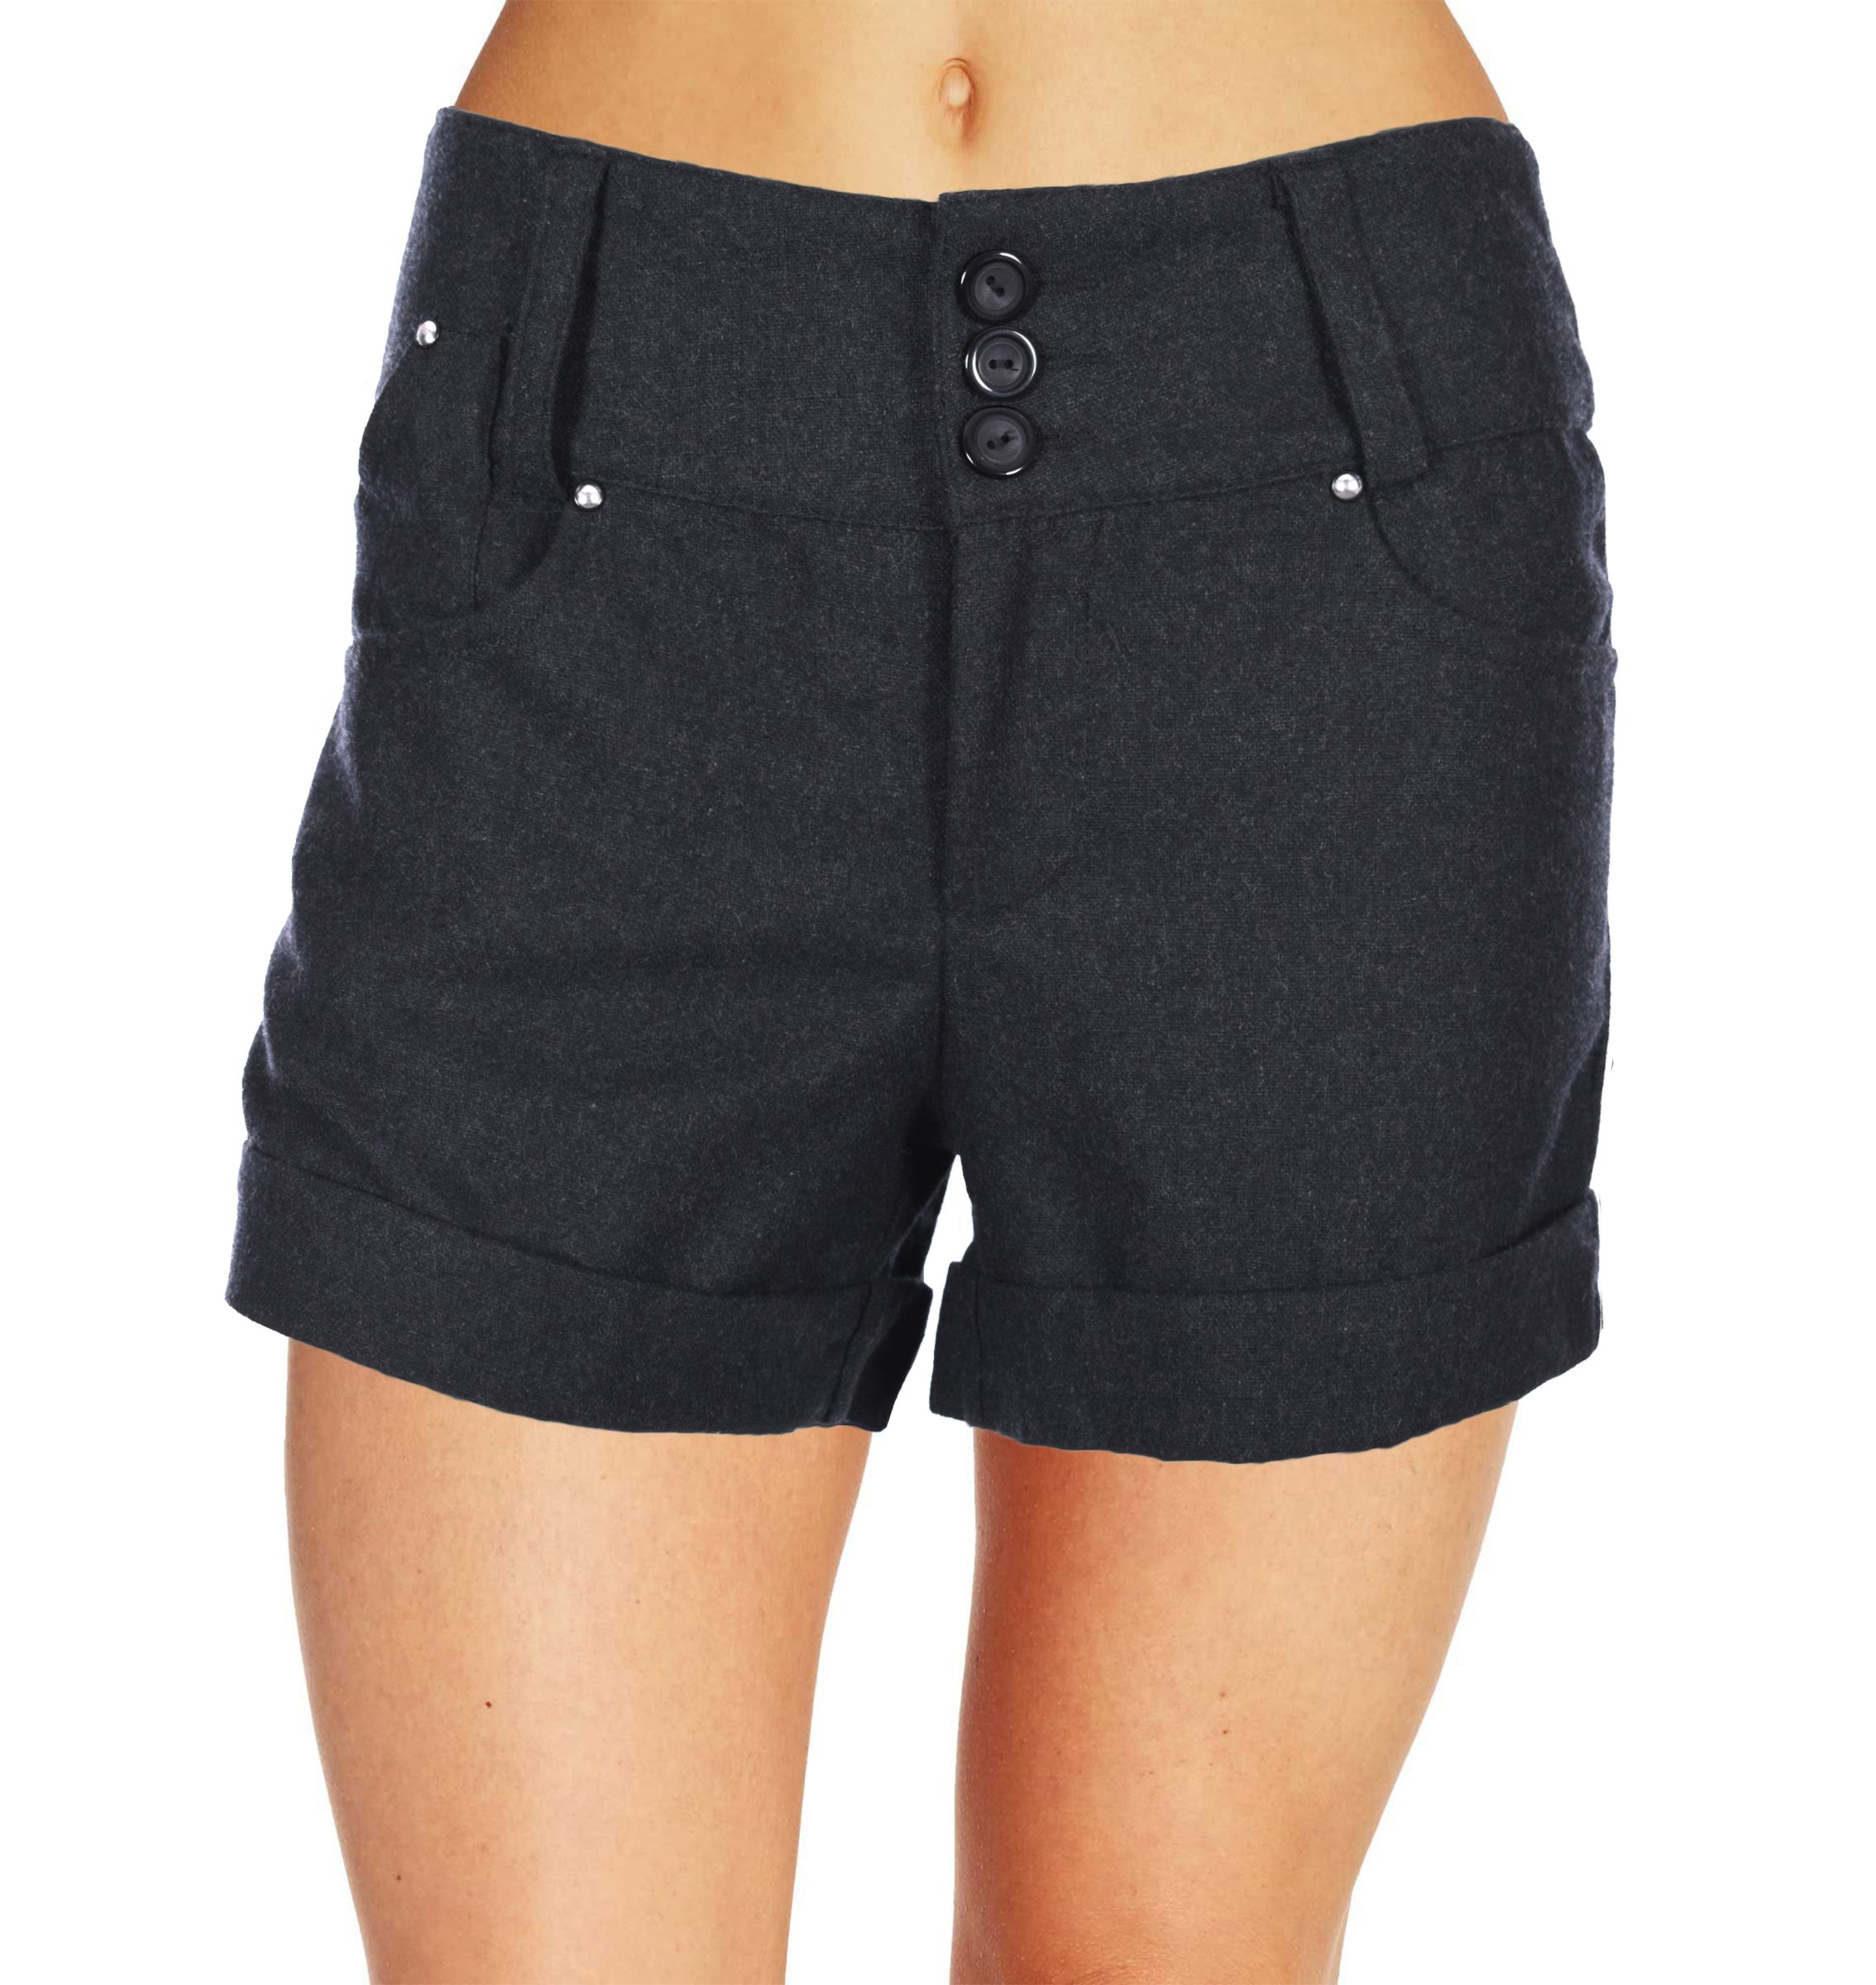 Finesse Women's Soft Blended Plus Size Shorts in Charcoal Gray (2X, Charcoal Gray)